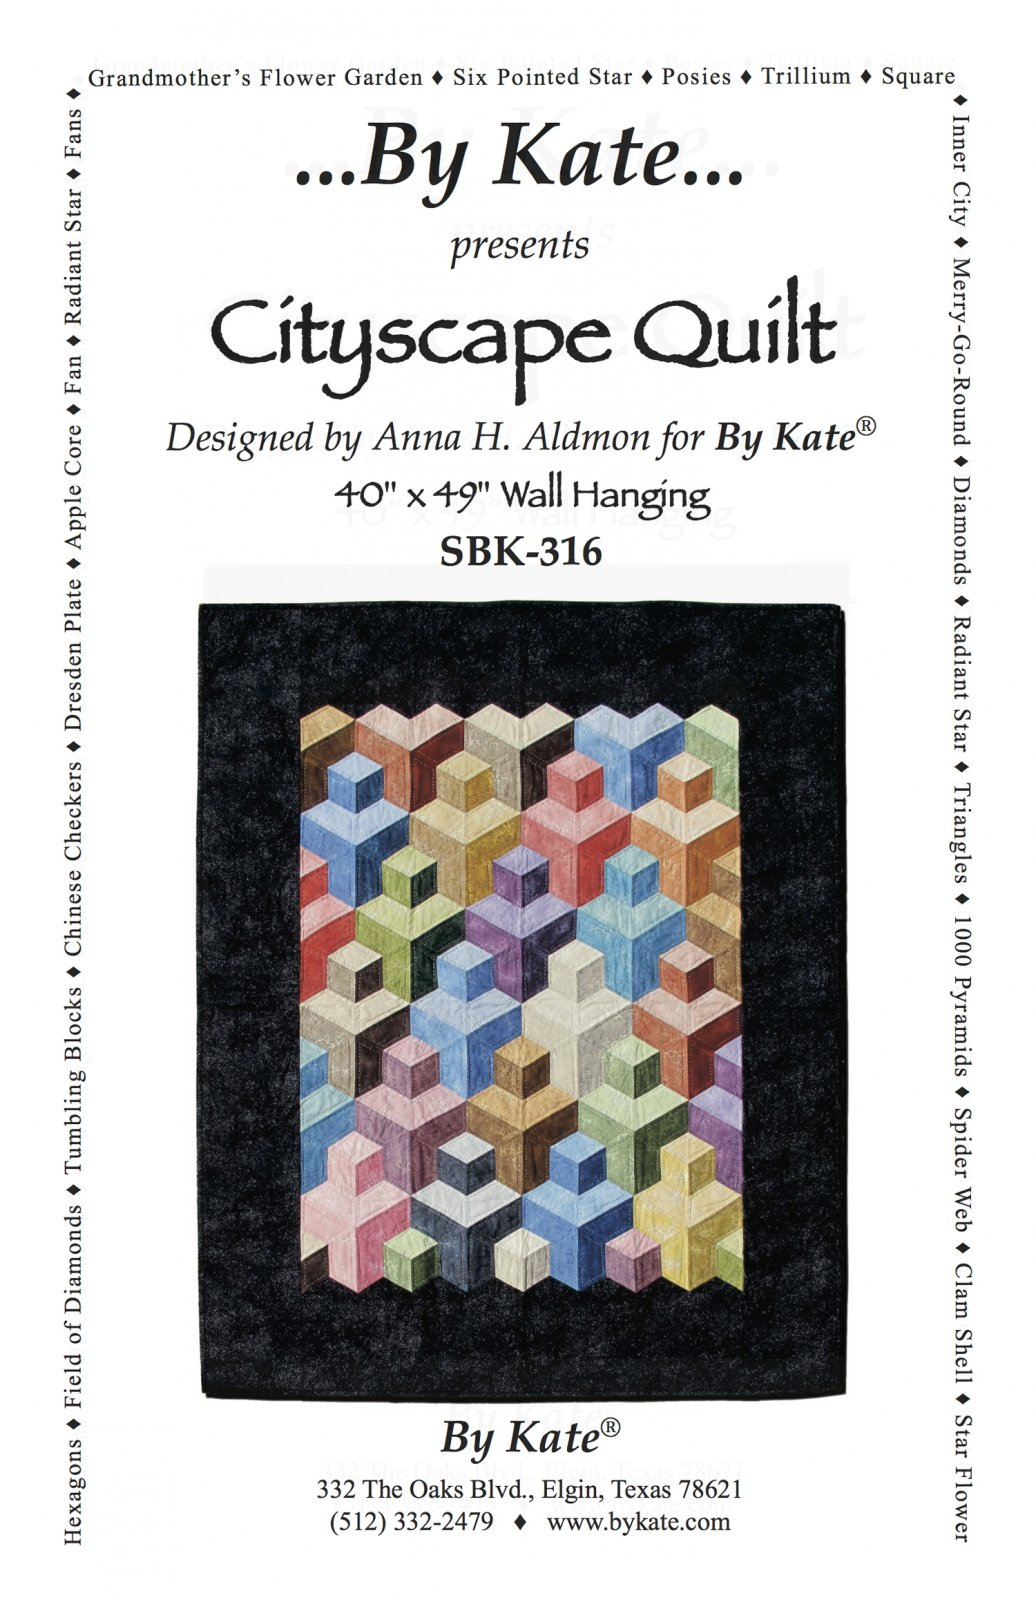 Cityscape Quilt Wall Hanging